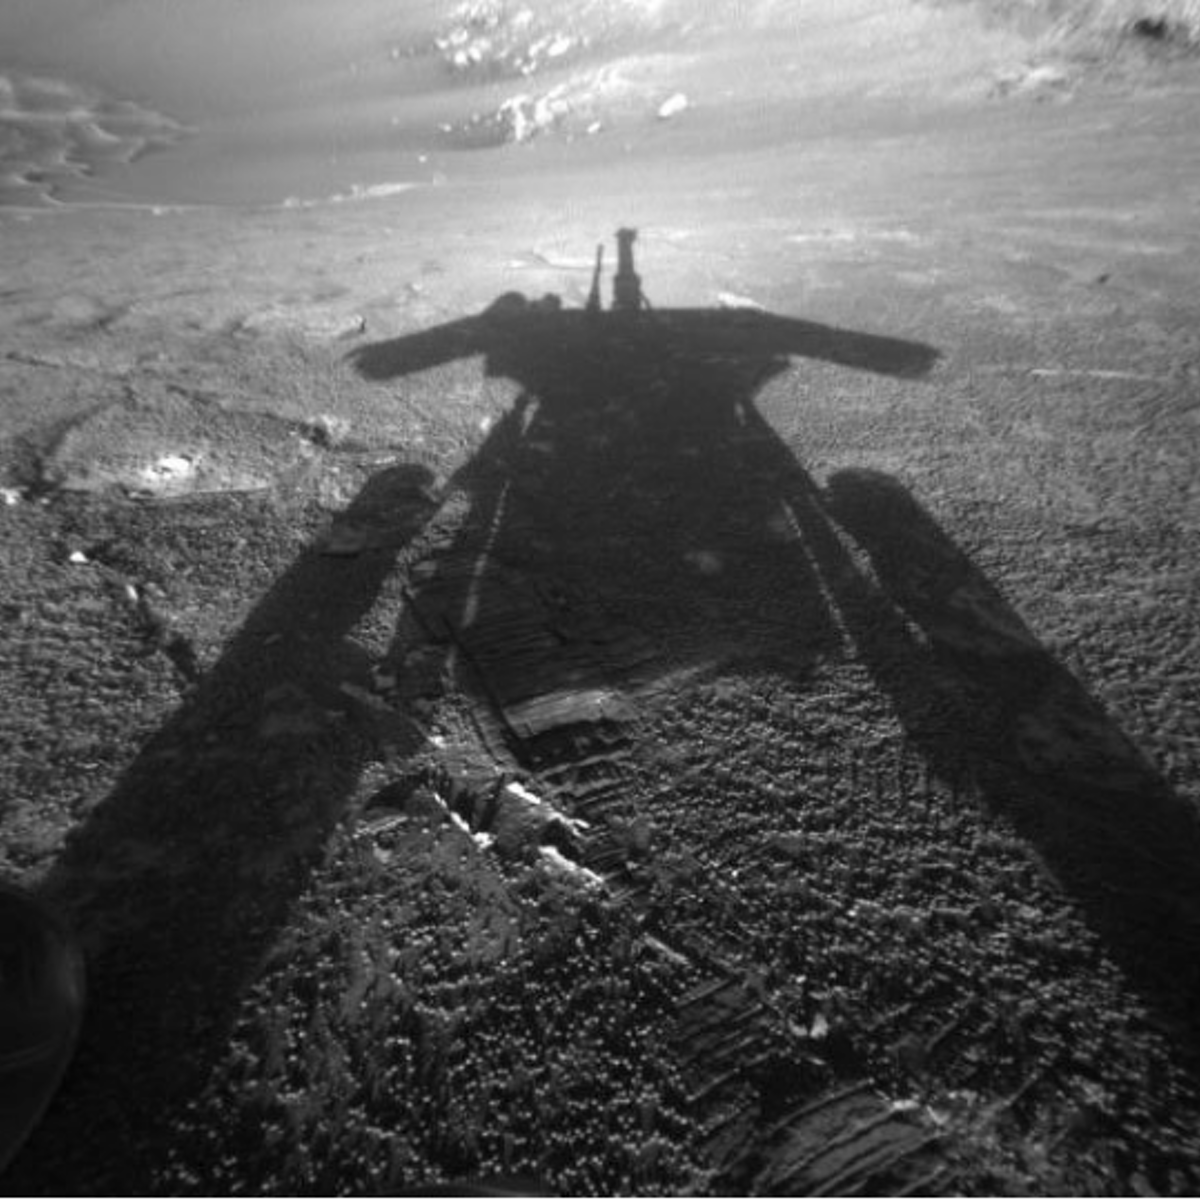 Life on Mars: my 15 amazing years with Oppy, NASA's record